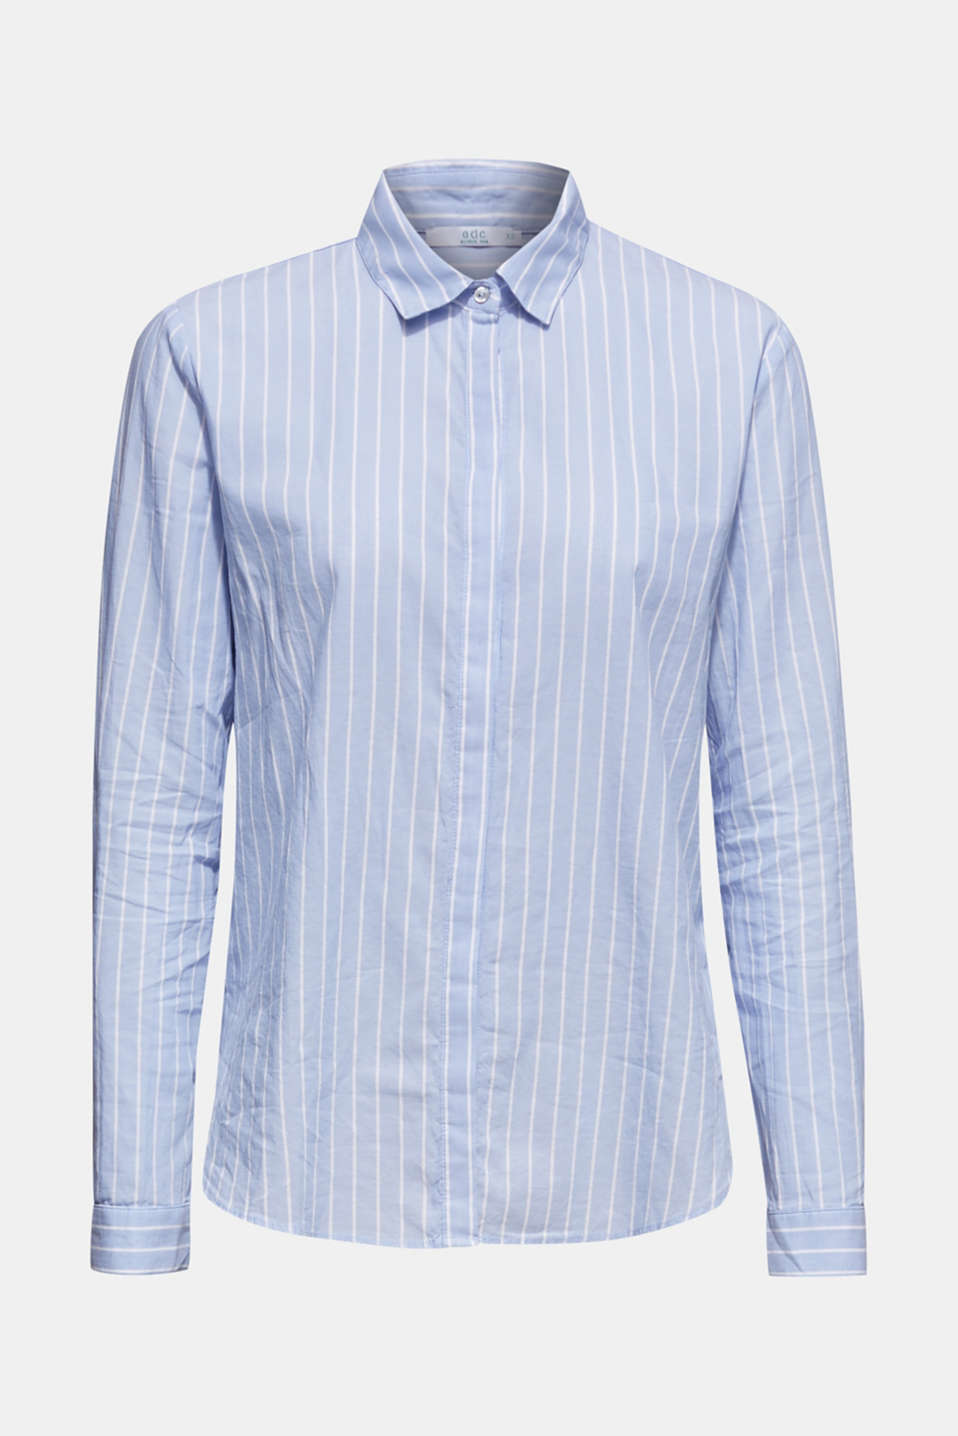 Striped blouse in 100% cotton, LIGHT BLUE, detail image number 7